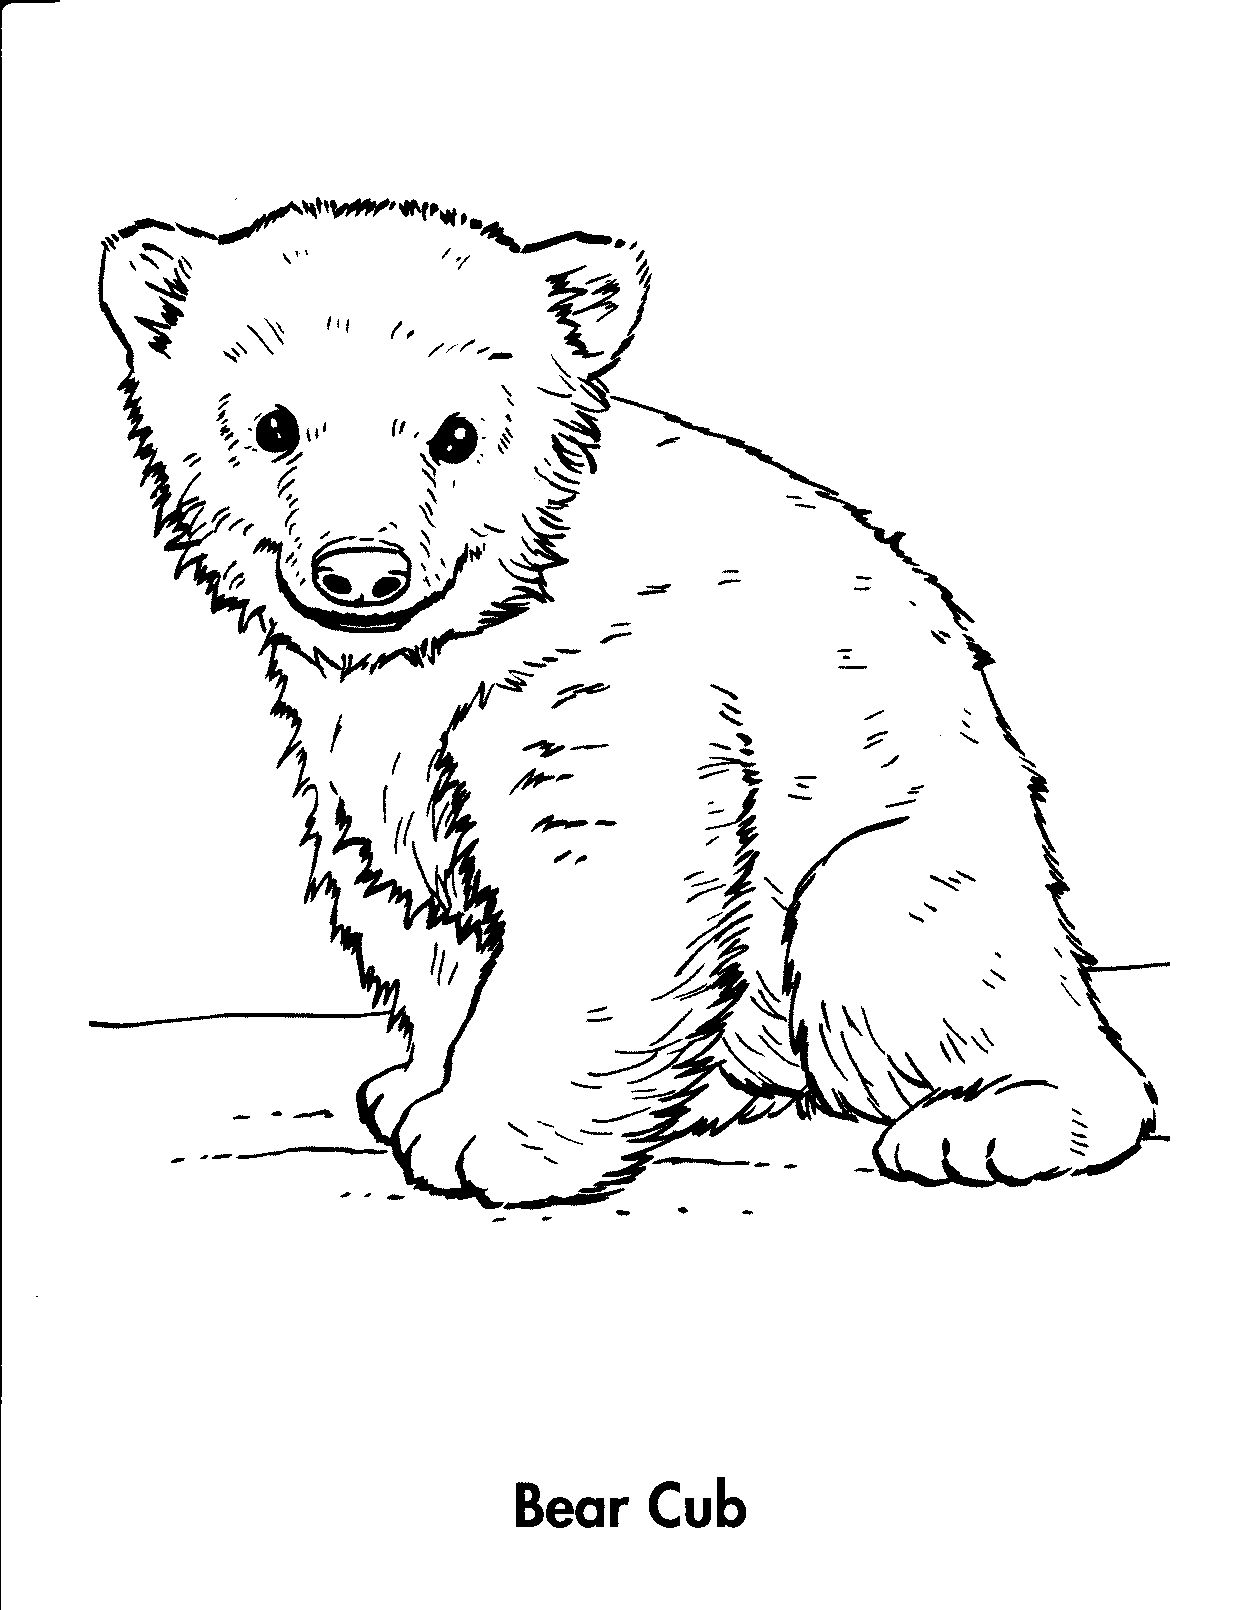 bear cub coloring pages grizzly bear cubs playing coloring page netart coloring cub pages bear